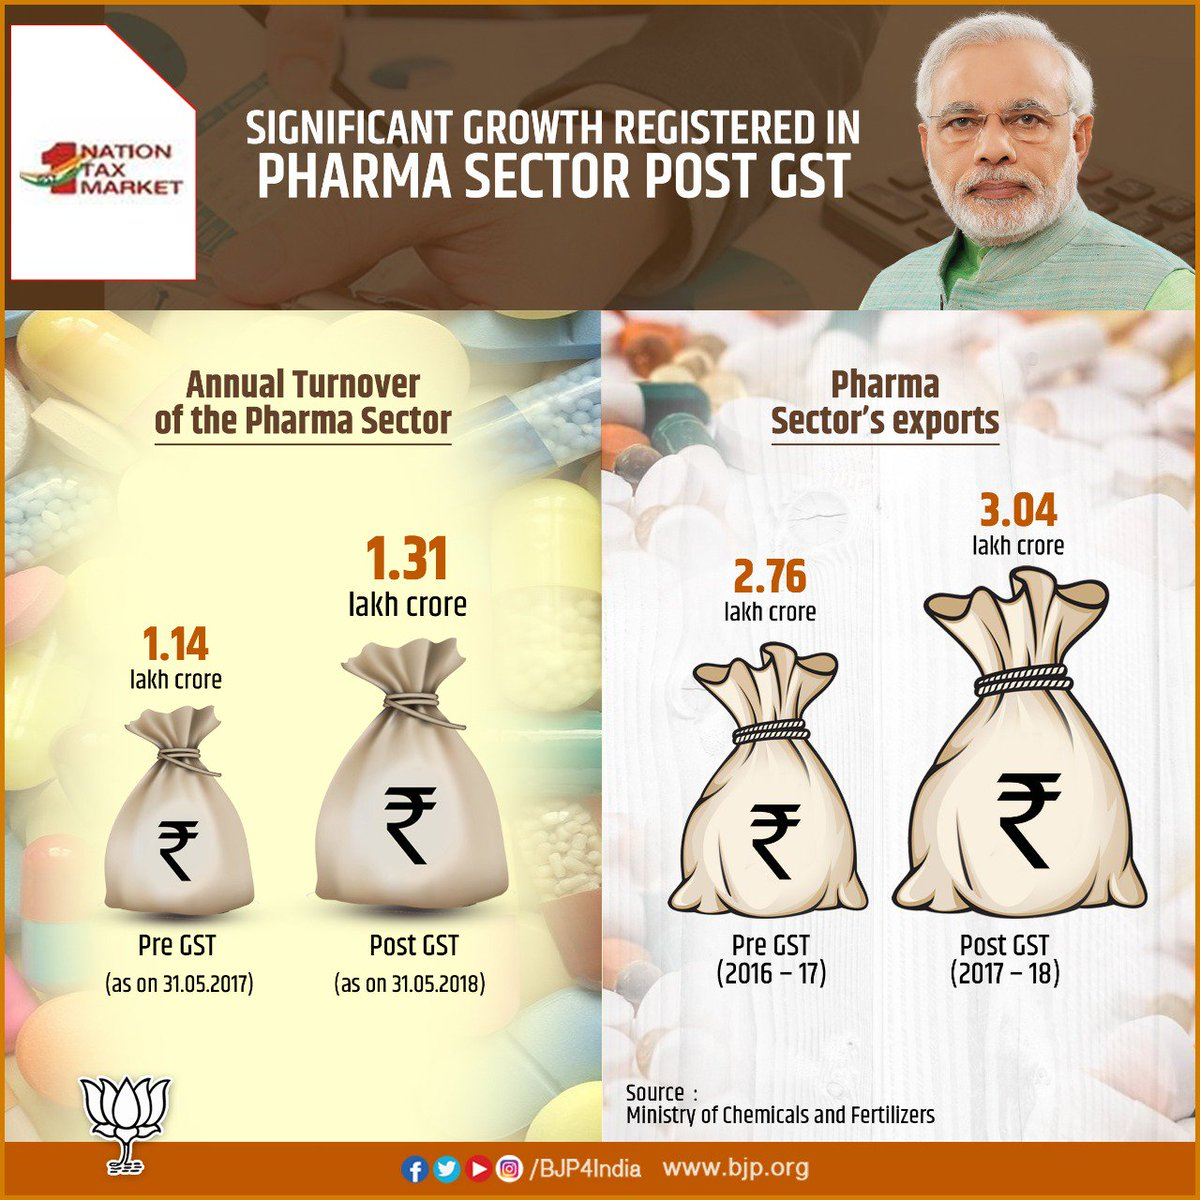 Pharma sector has registered significant growth in turnover and exports post GST. Impact of GST has been very positive across the sectors. #OneNationOneTax